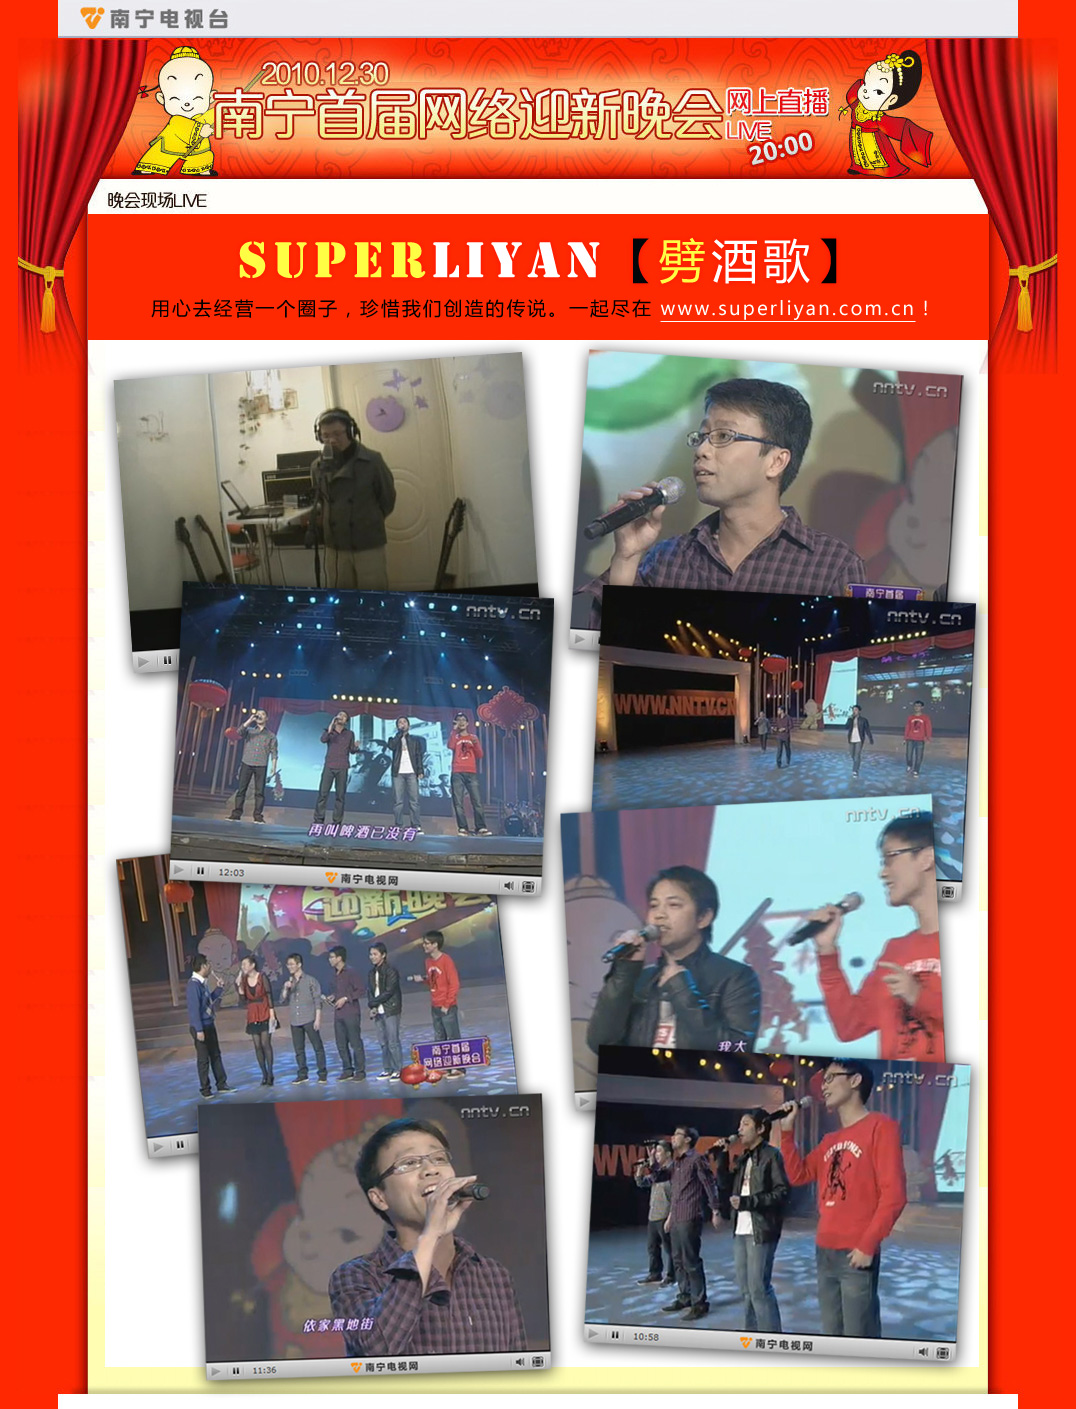 superliyanshow